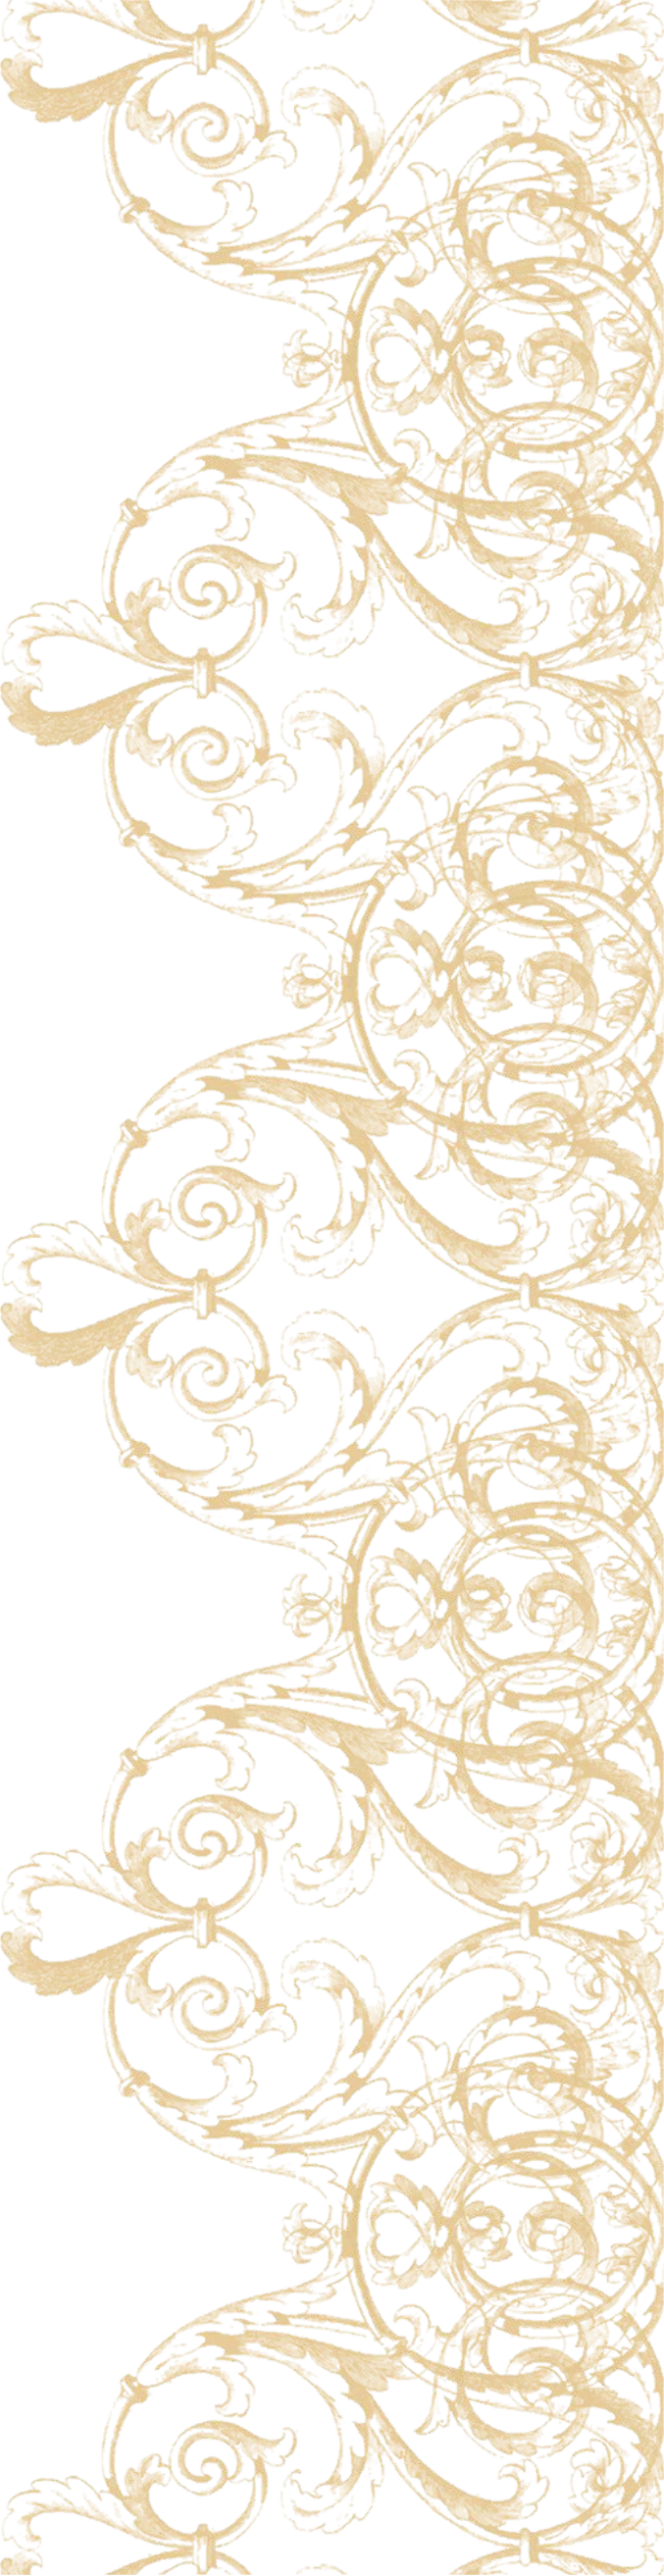 lace border drawing - photo #33